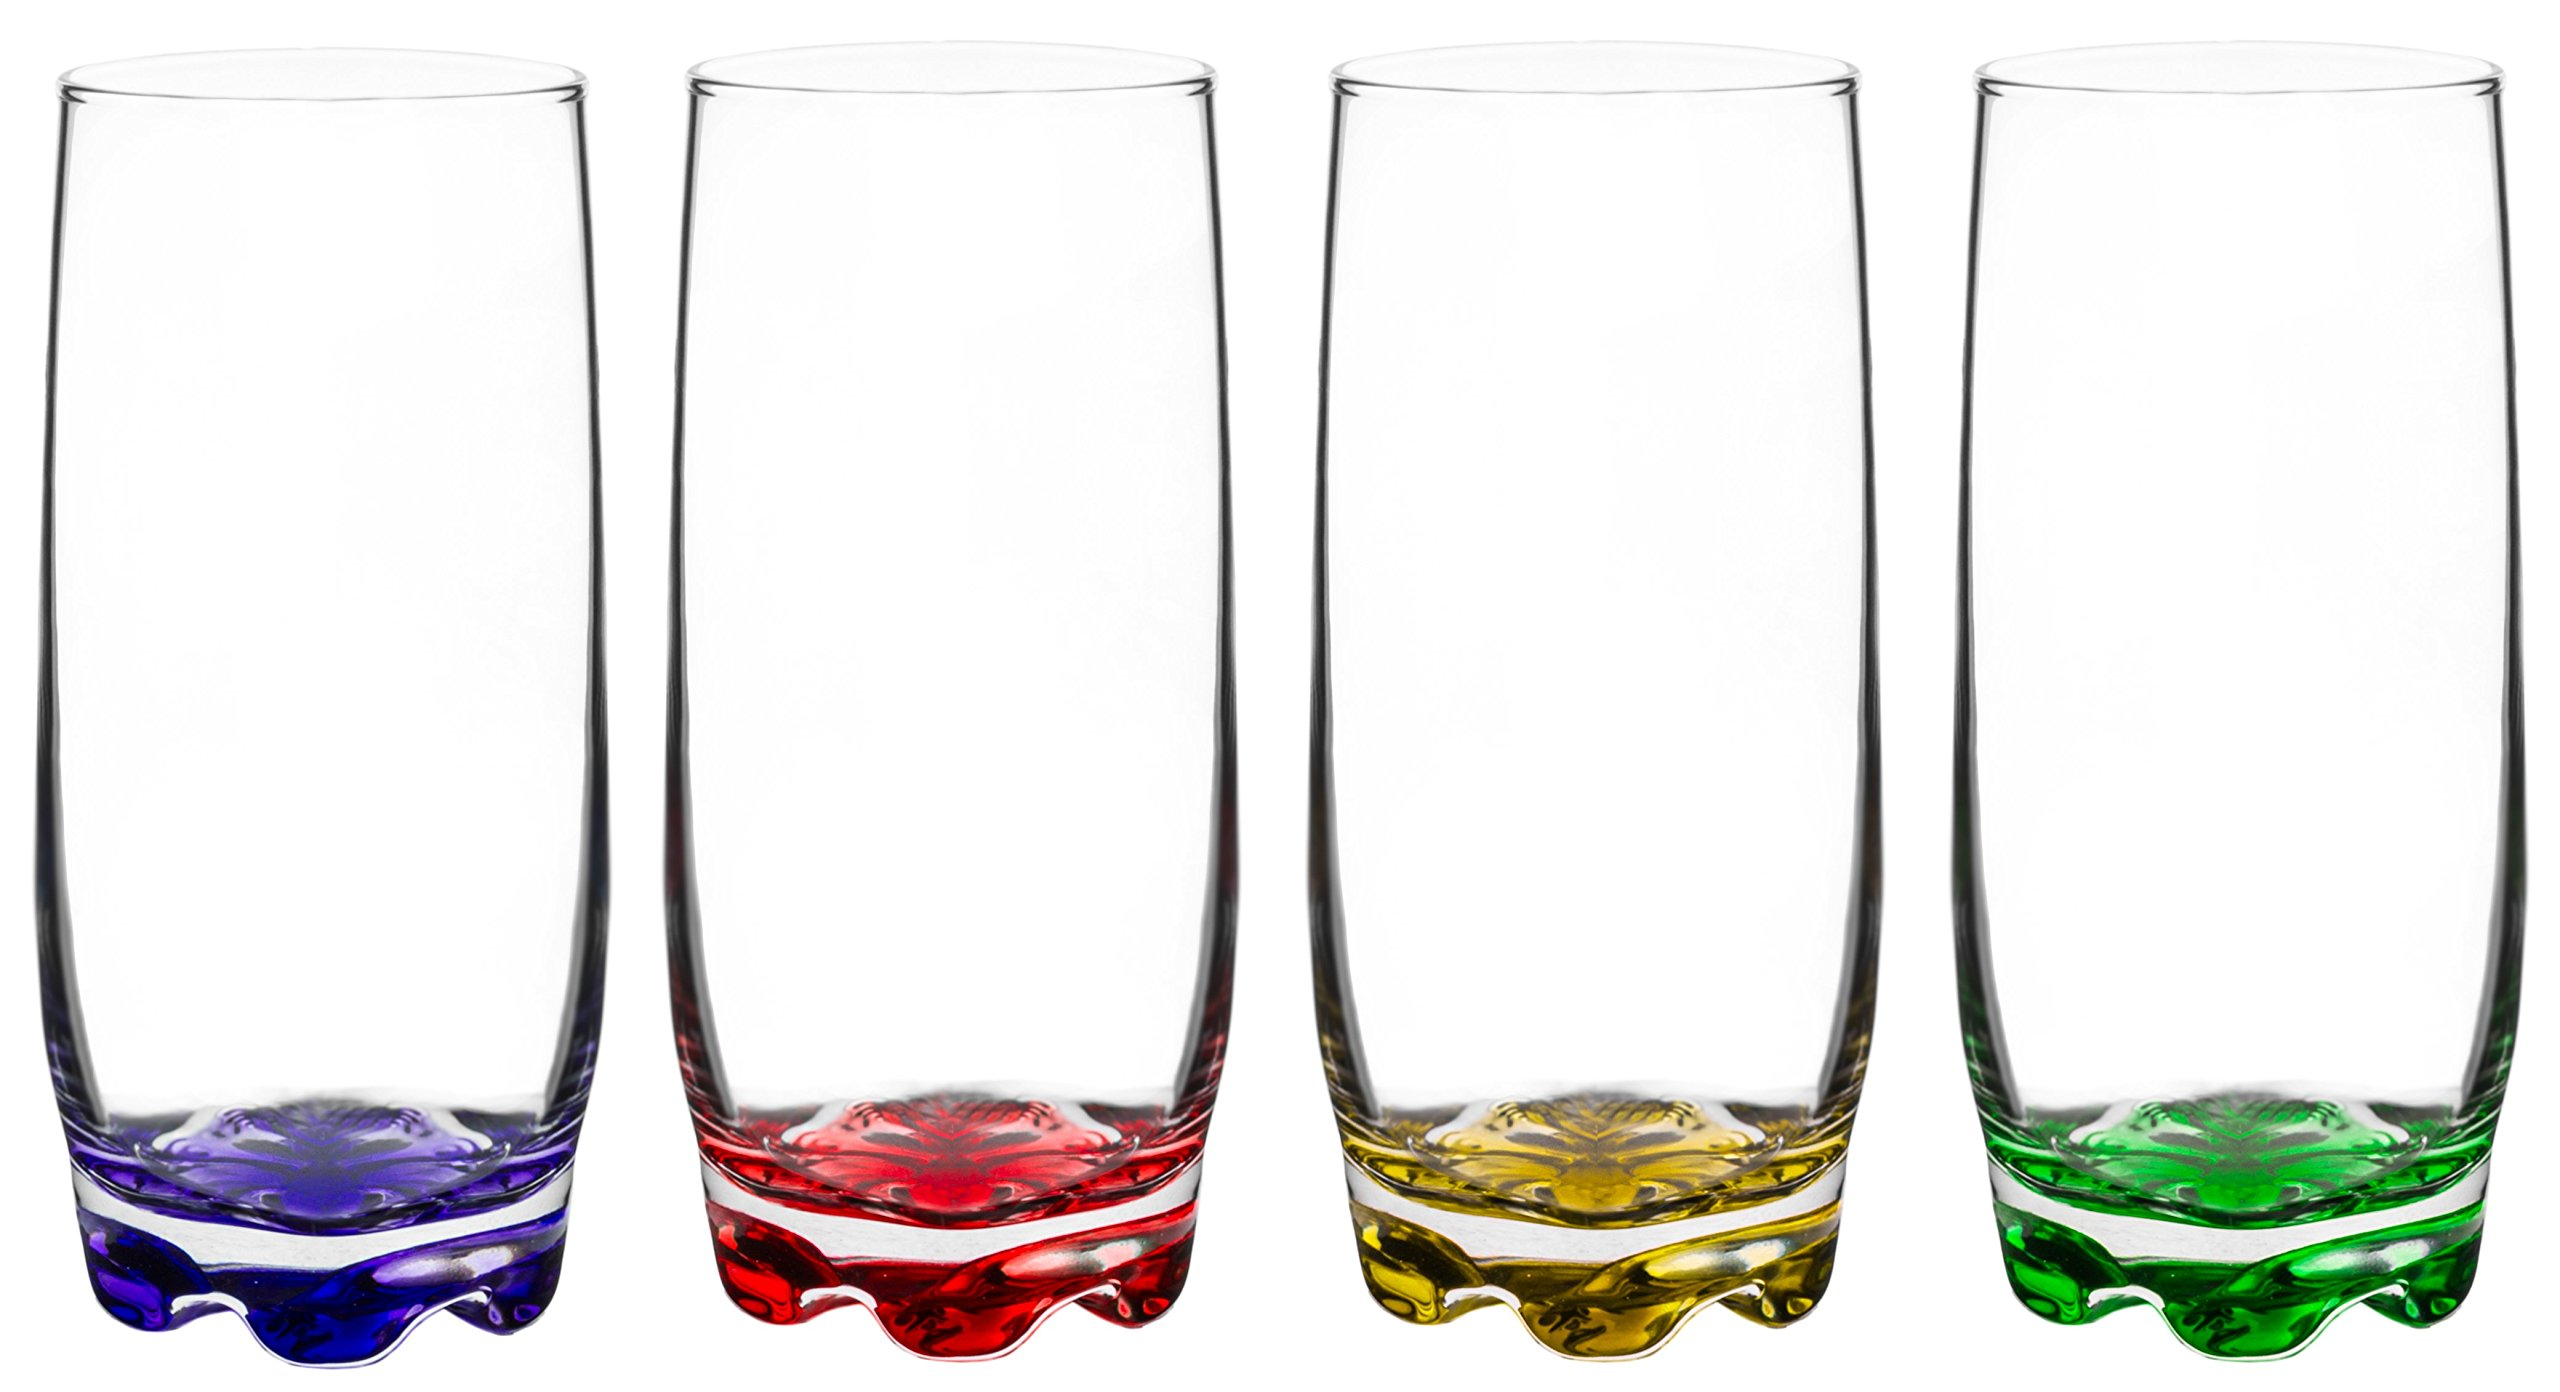 Vibrant Splash Water/Beverage Highball Glasses, 13.25 Ounce - Set of 4